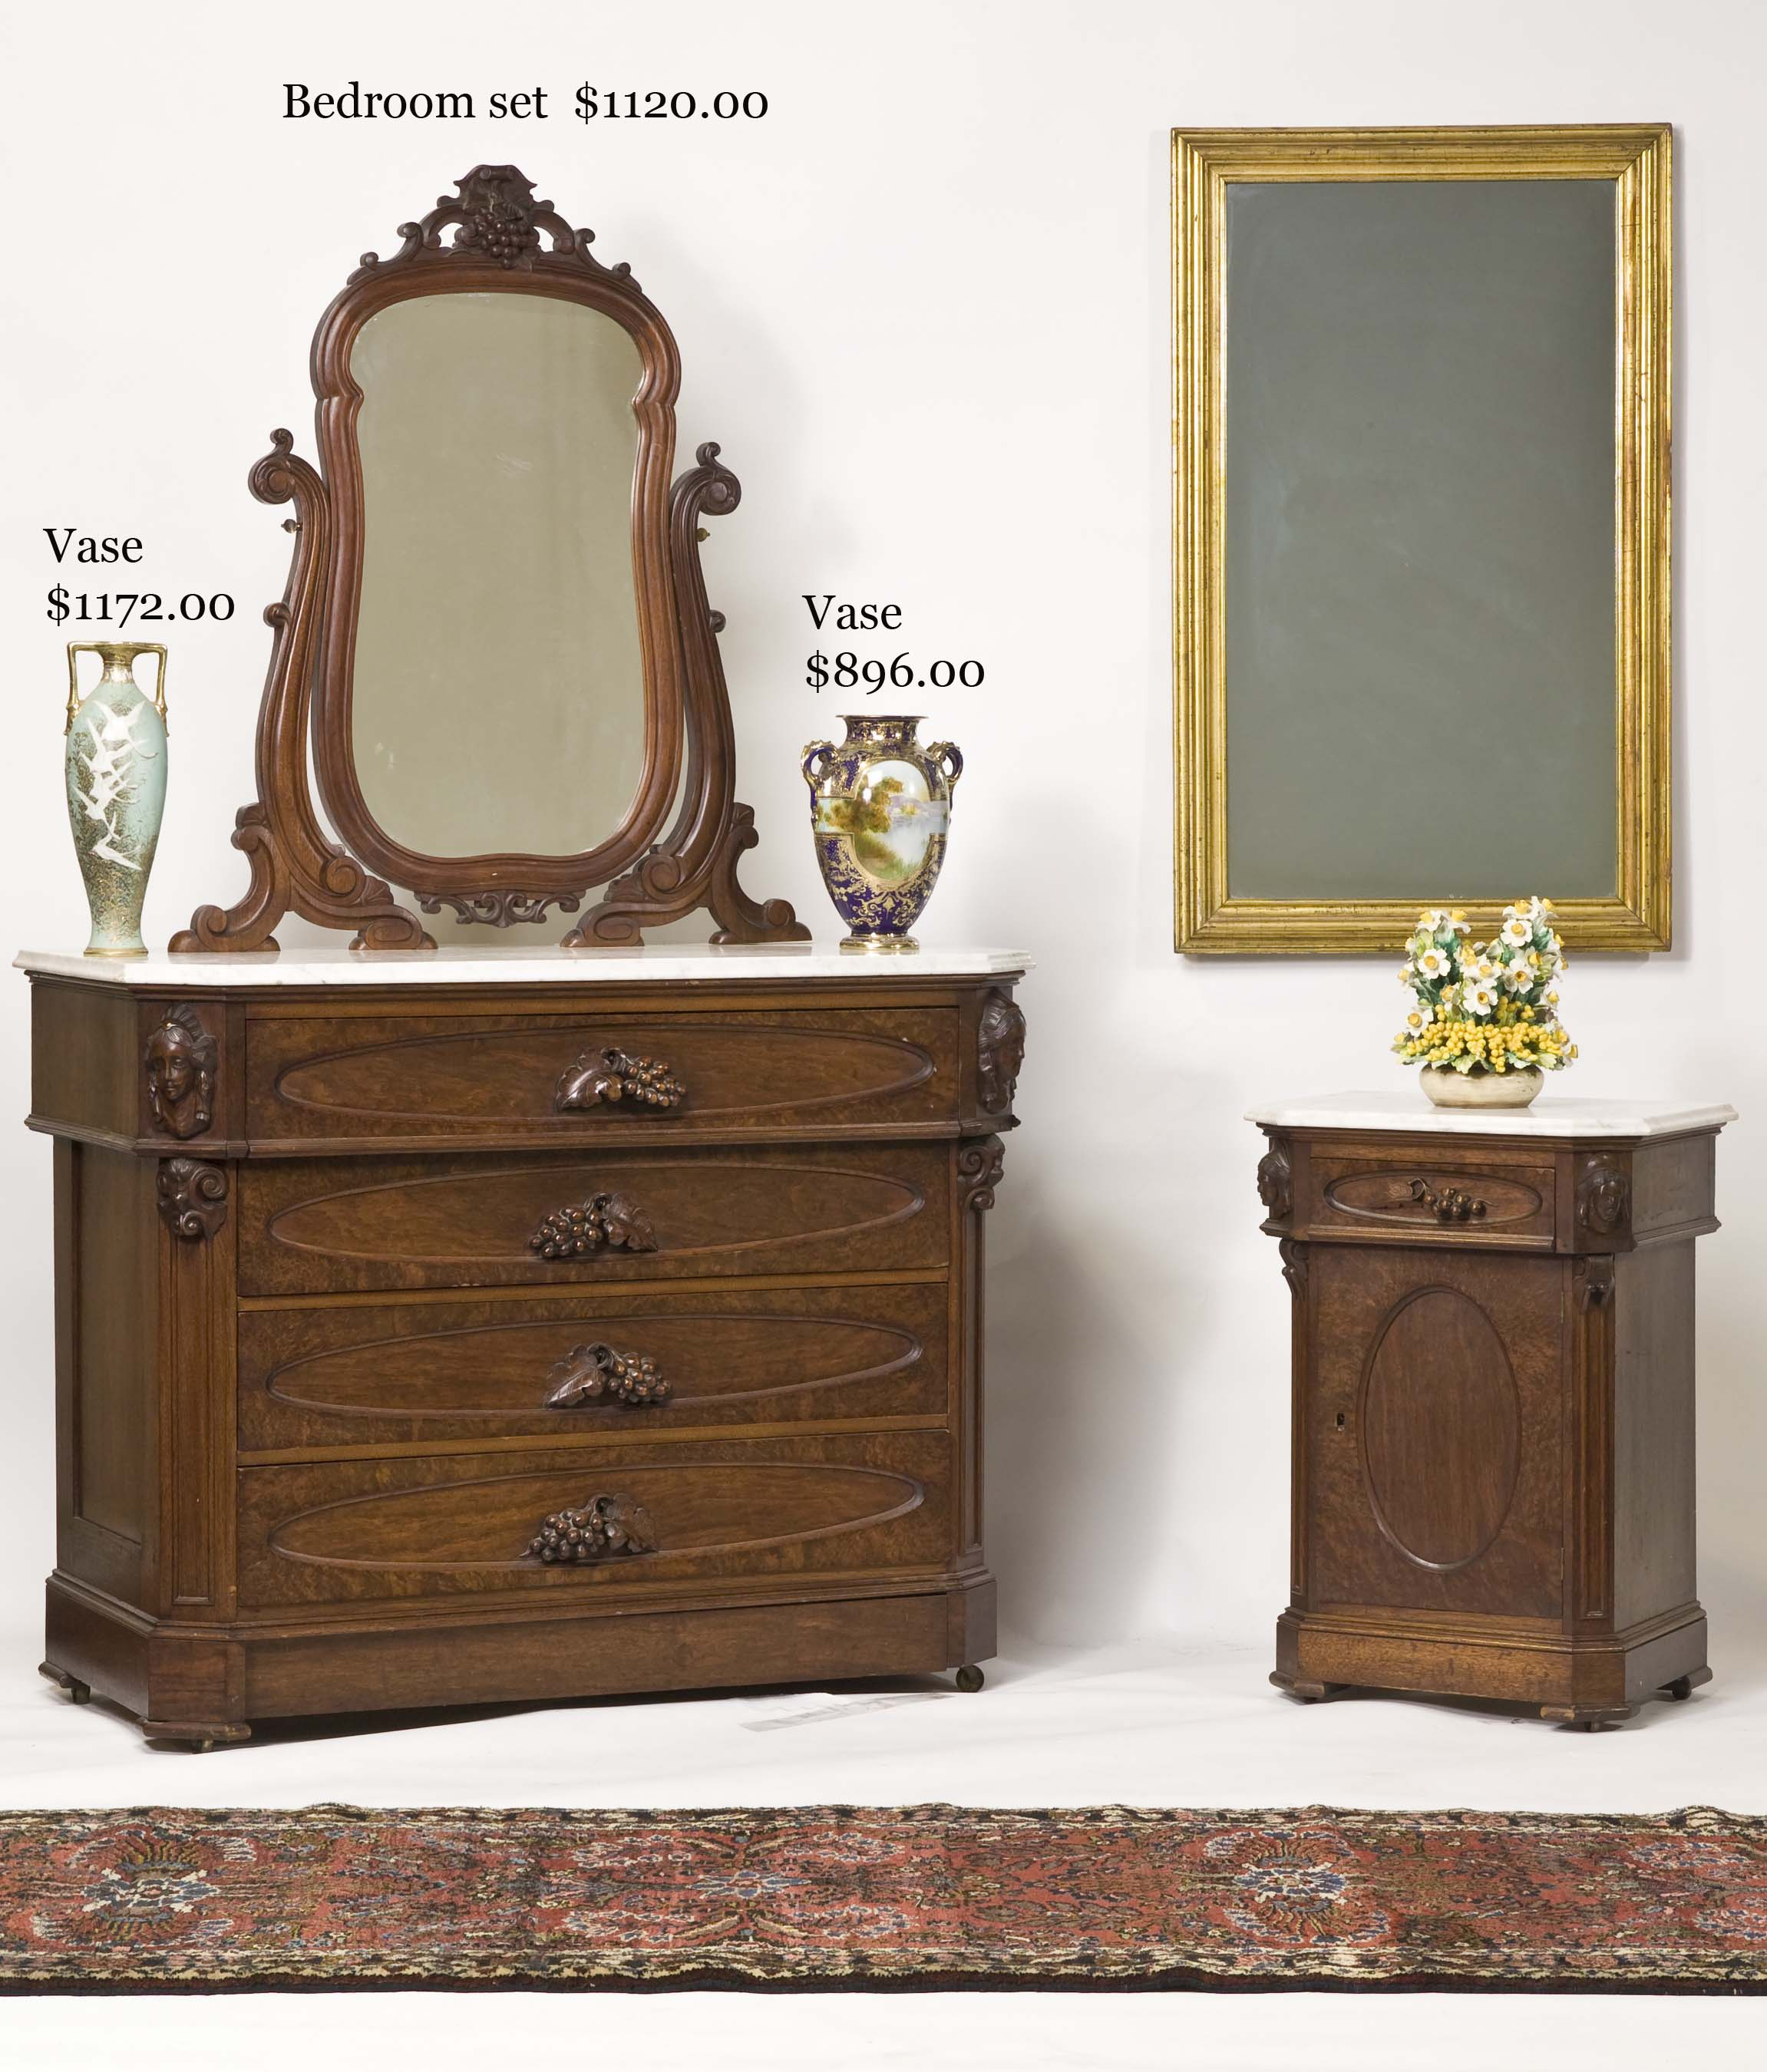 Displaying 10 Images For Antique Victorian Bedroom Furniture